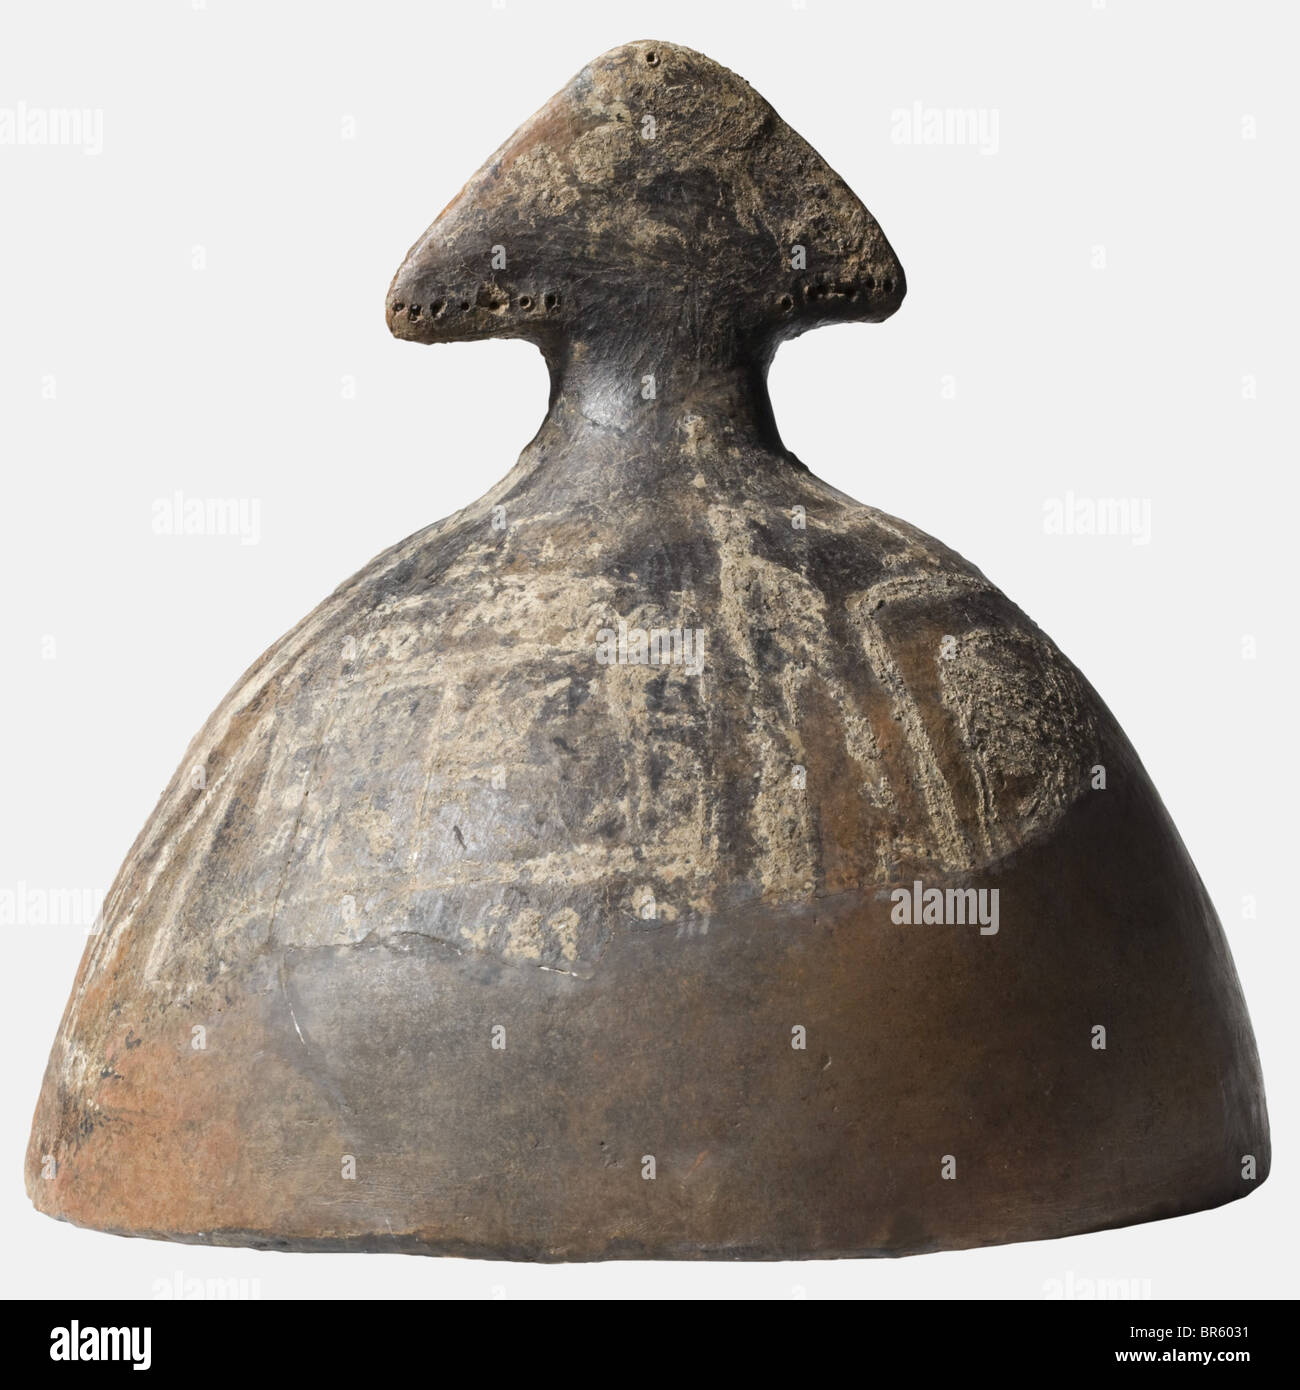 The lid of a cinerary urn, Villanova, 9th/8th century B.C. Hand-modelled pottery in the shape of an Etruscan helmet - Stock Image